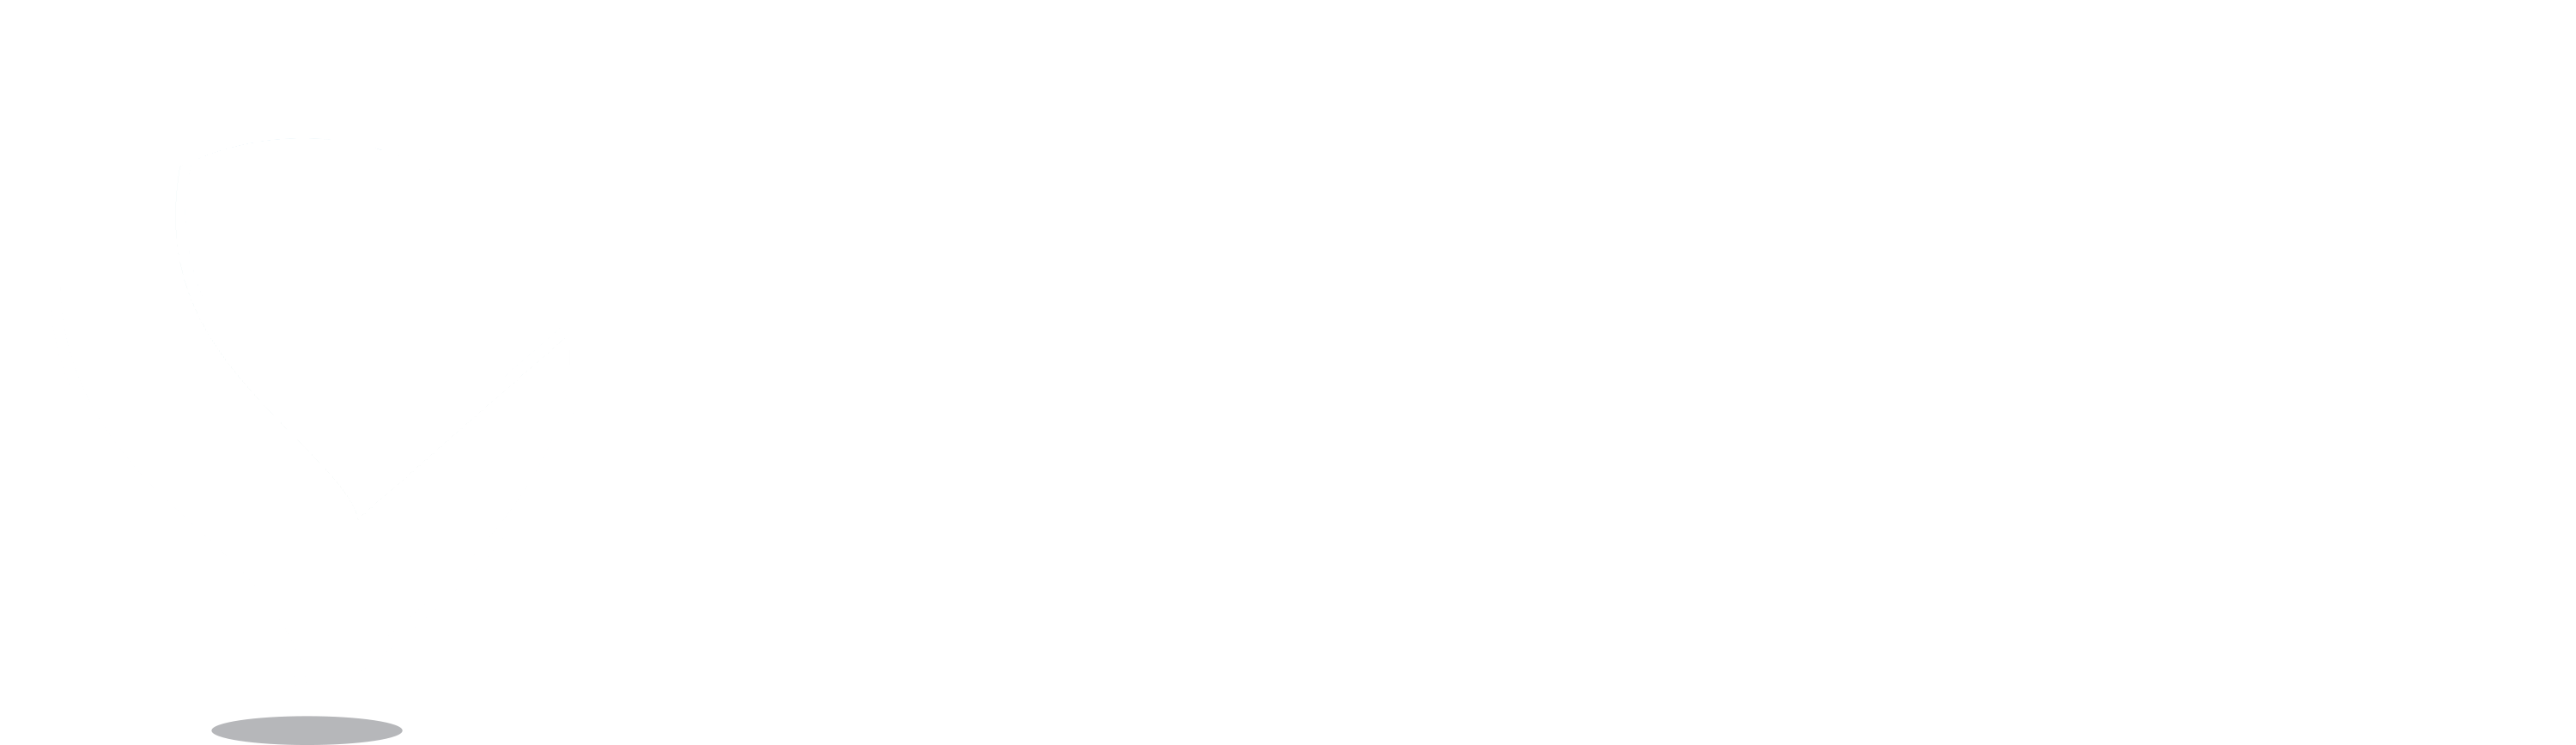 CLCA Insurance Solutions - white.png